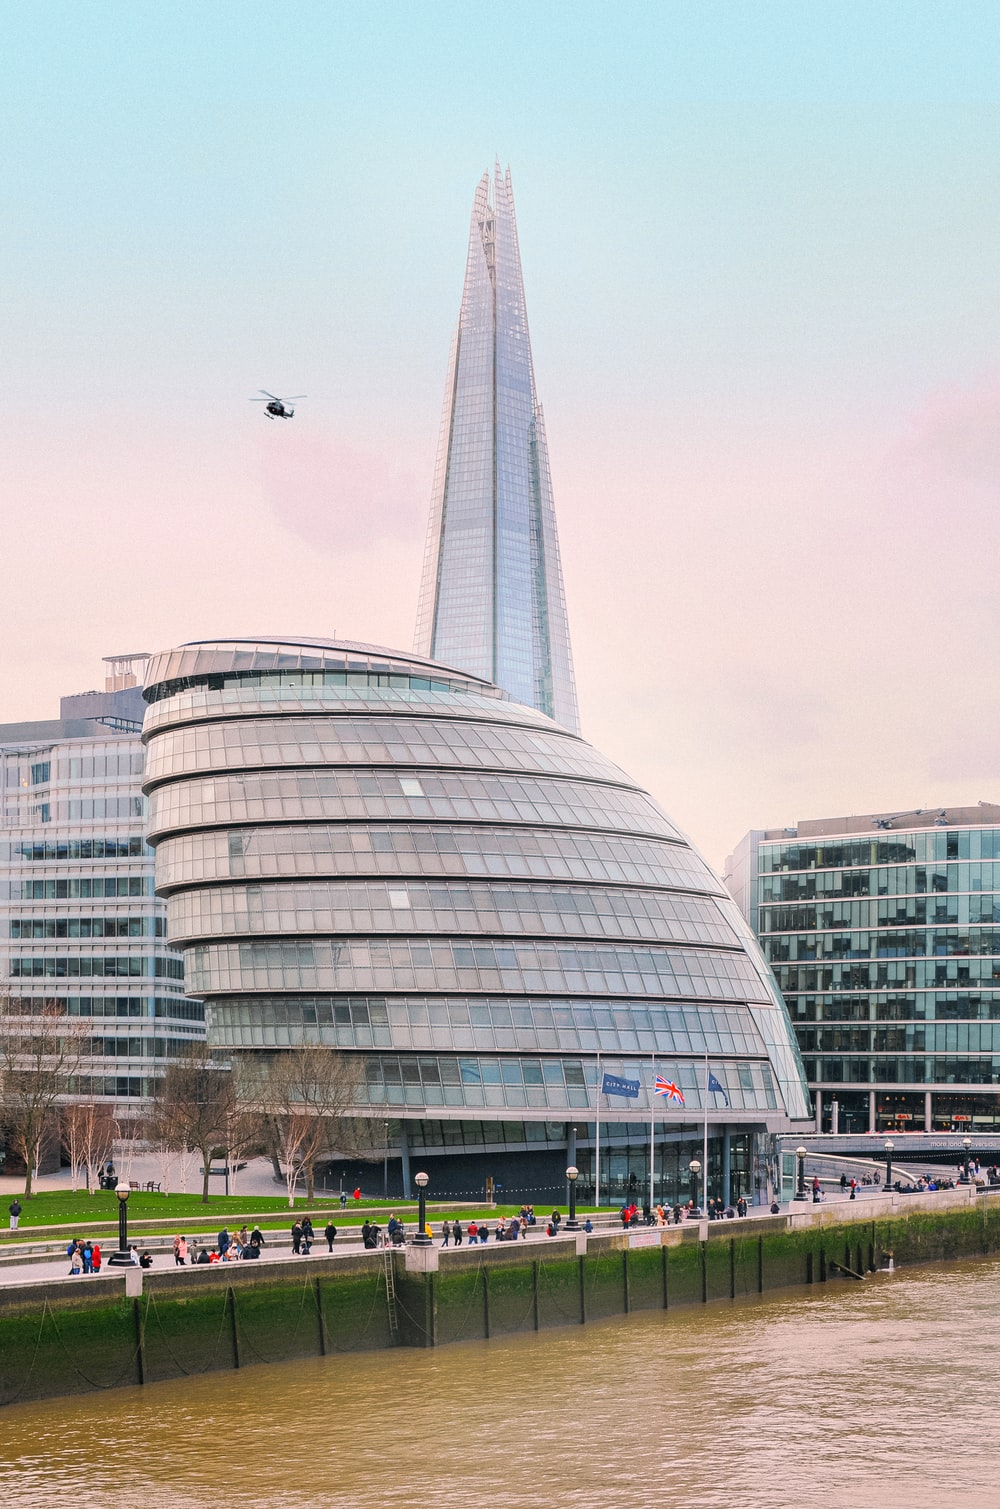 The Shard in London during daytime